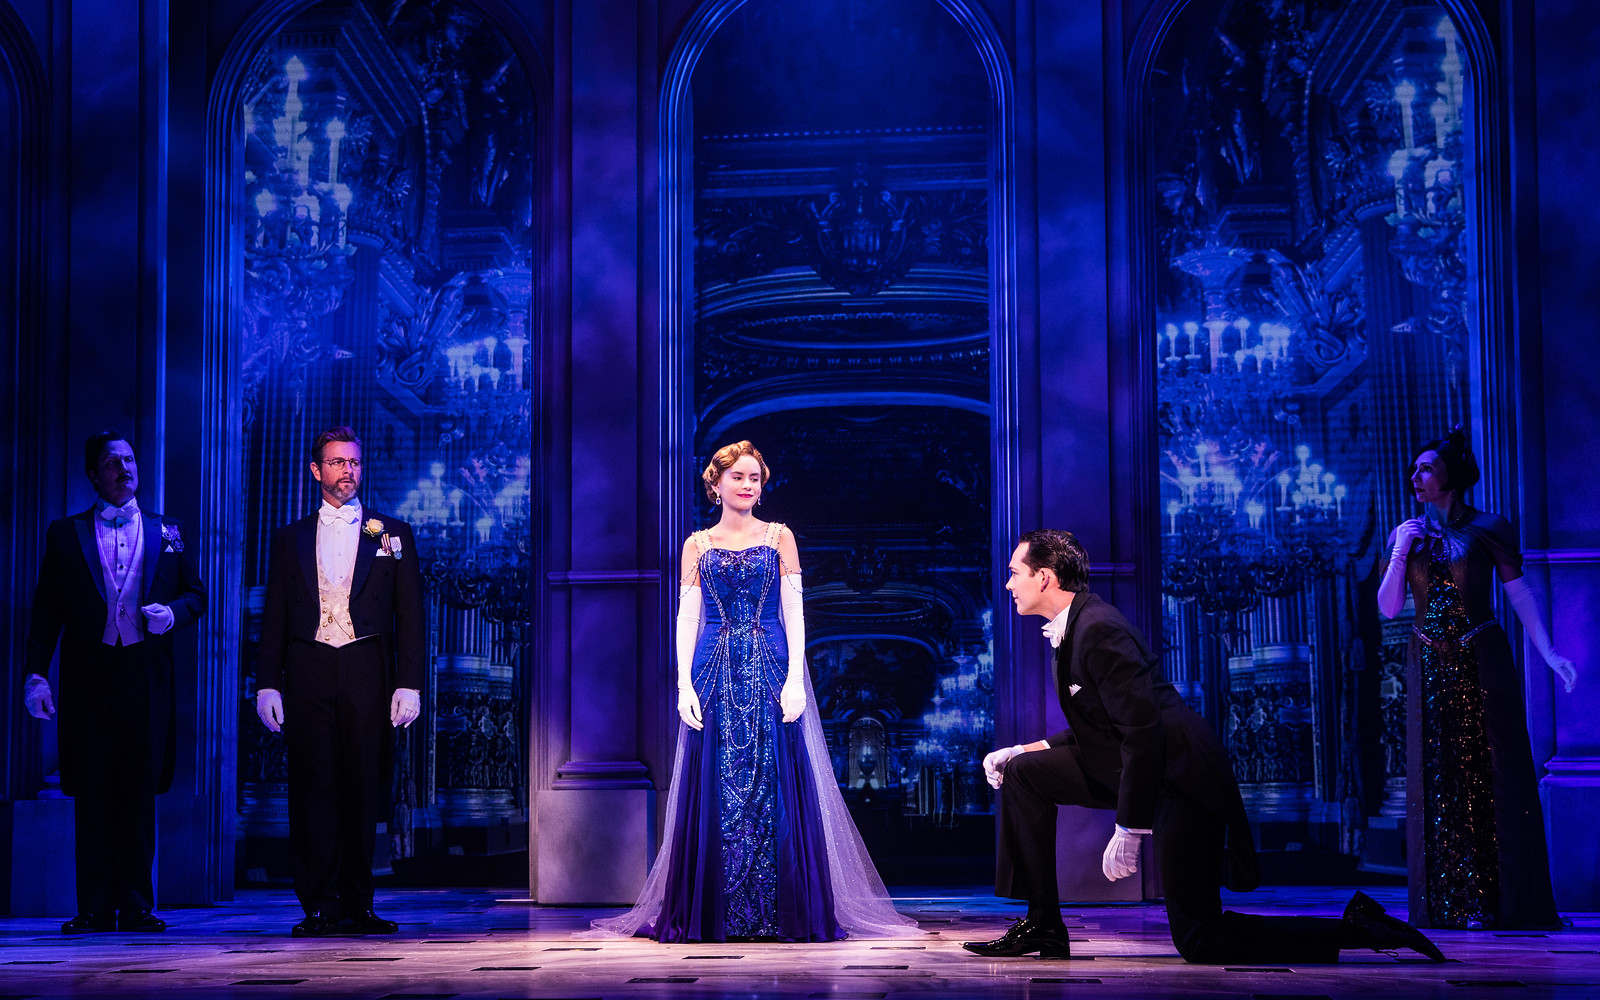 Press photo: Lila Coogan and the company in the national tour of Anastasia. Photo by Evan Zimmerman, MurphyMade.